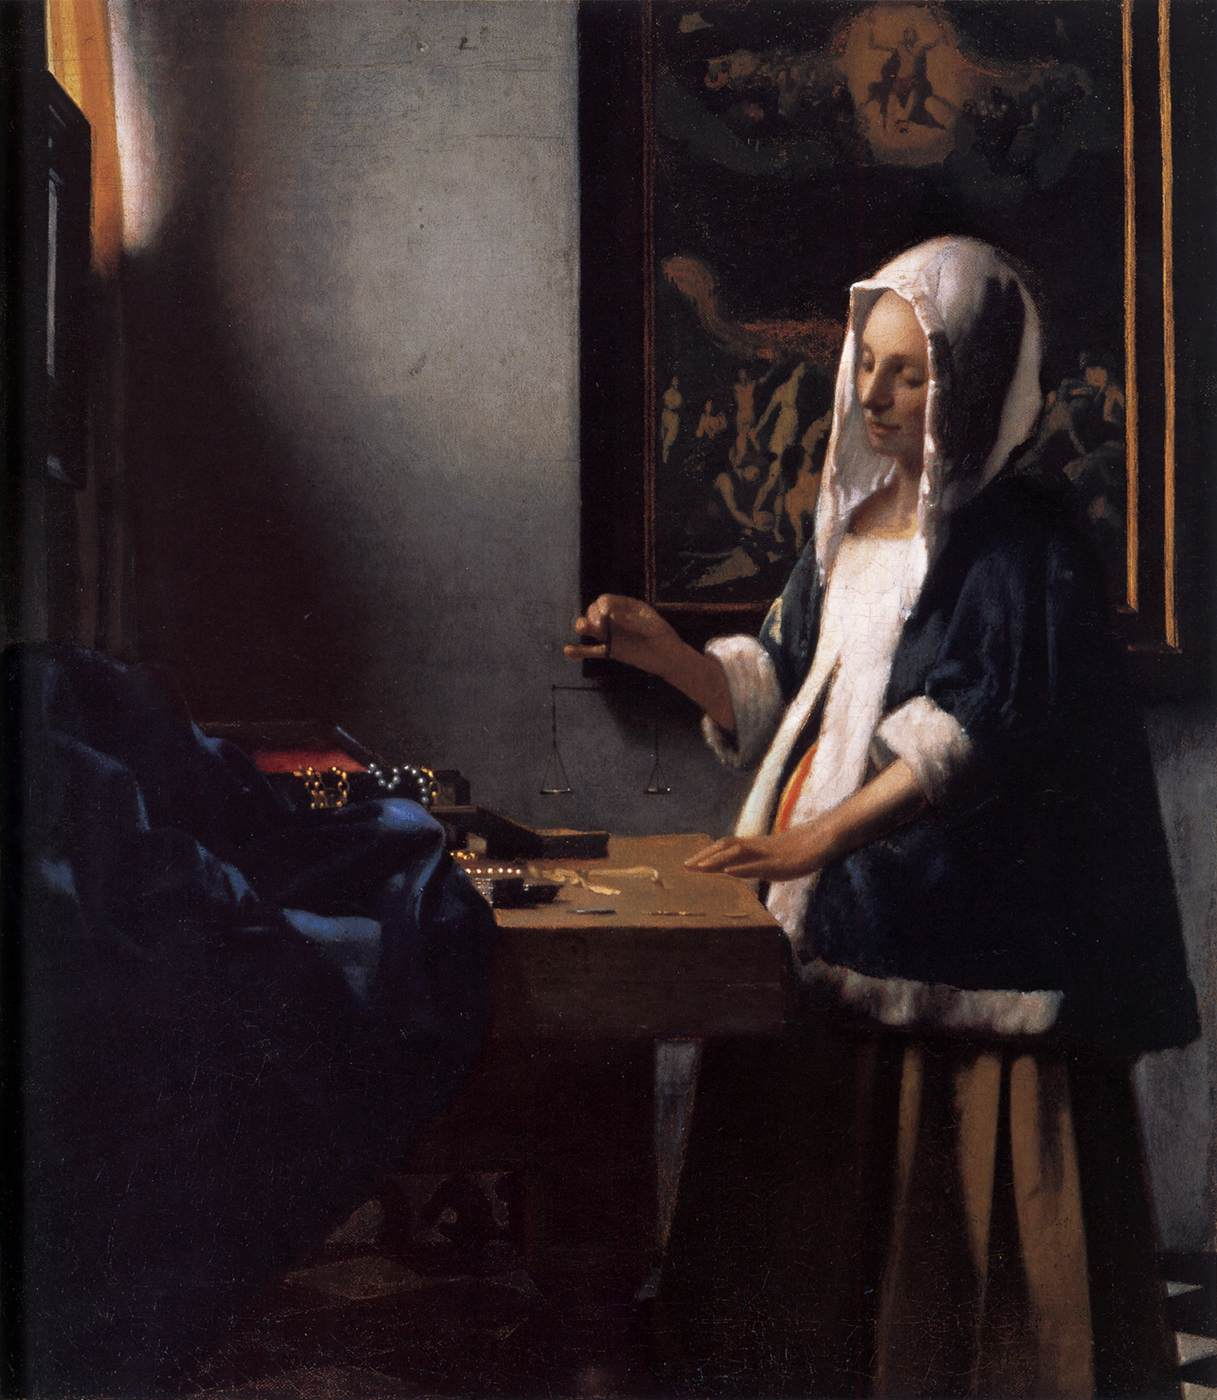 an analysis of an imaginary art of vemeer of delft There are works in which a single detail steals the show leonardo's mona lisa is famous for that smile michelangelo's the creation of adam is famous for those hands.